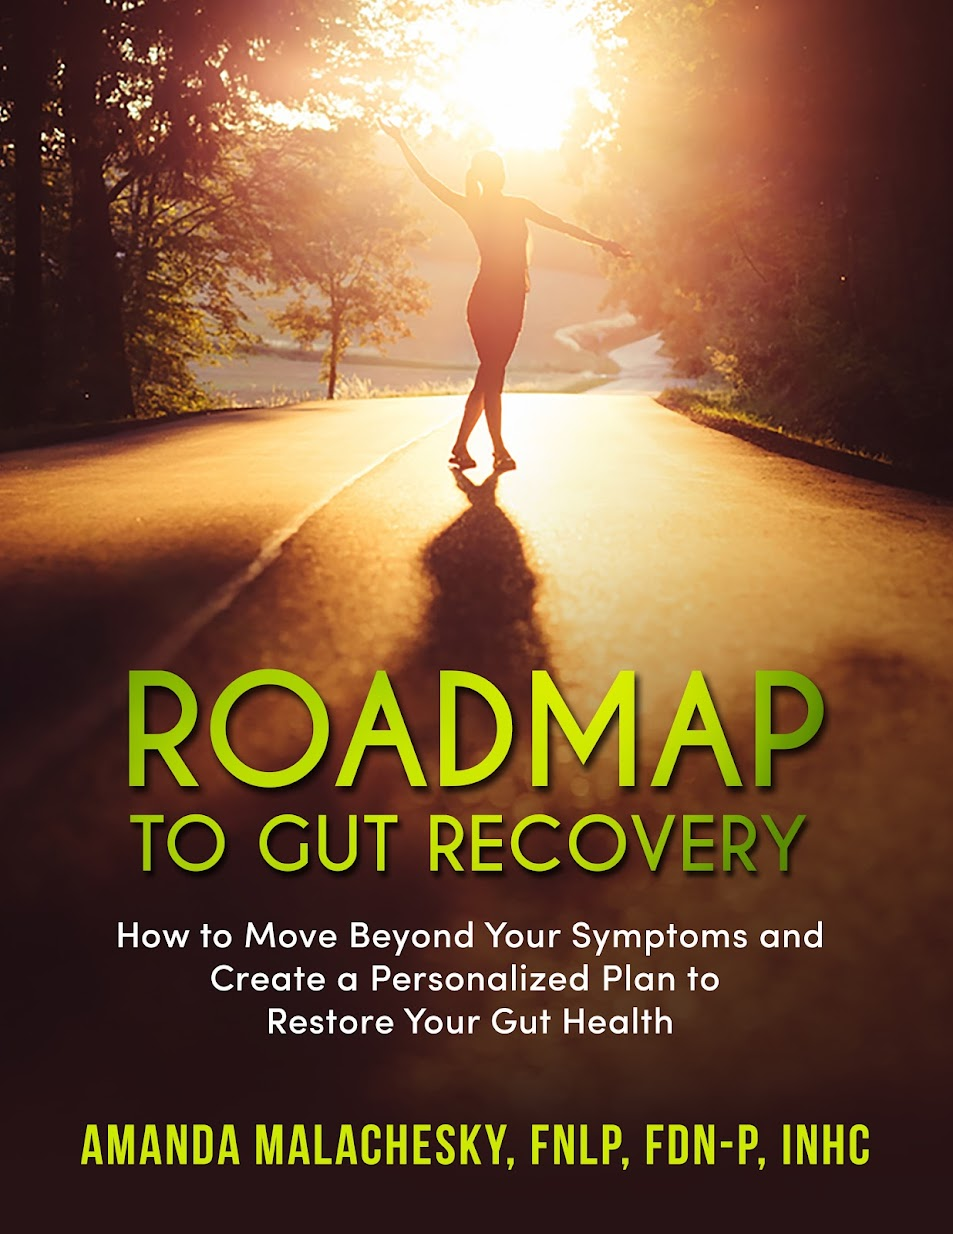 Roadmap to Gut Recovery